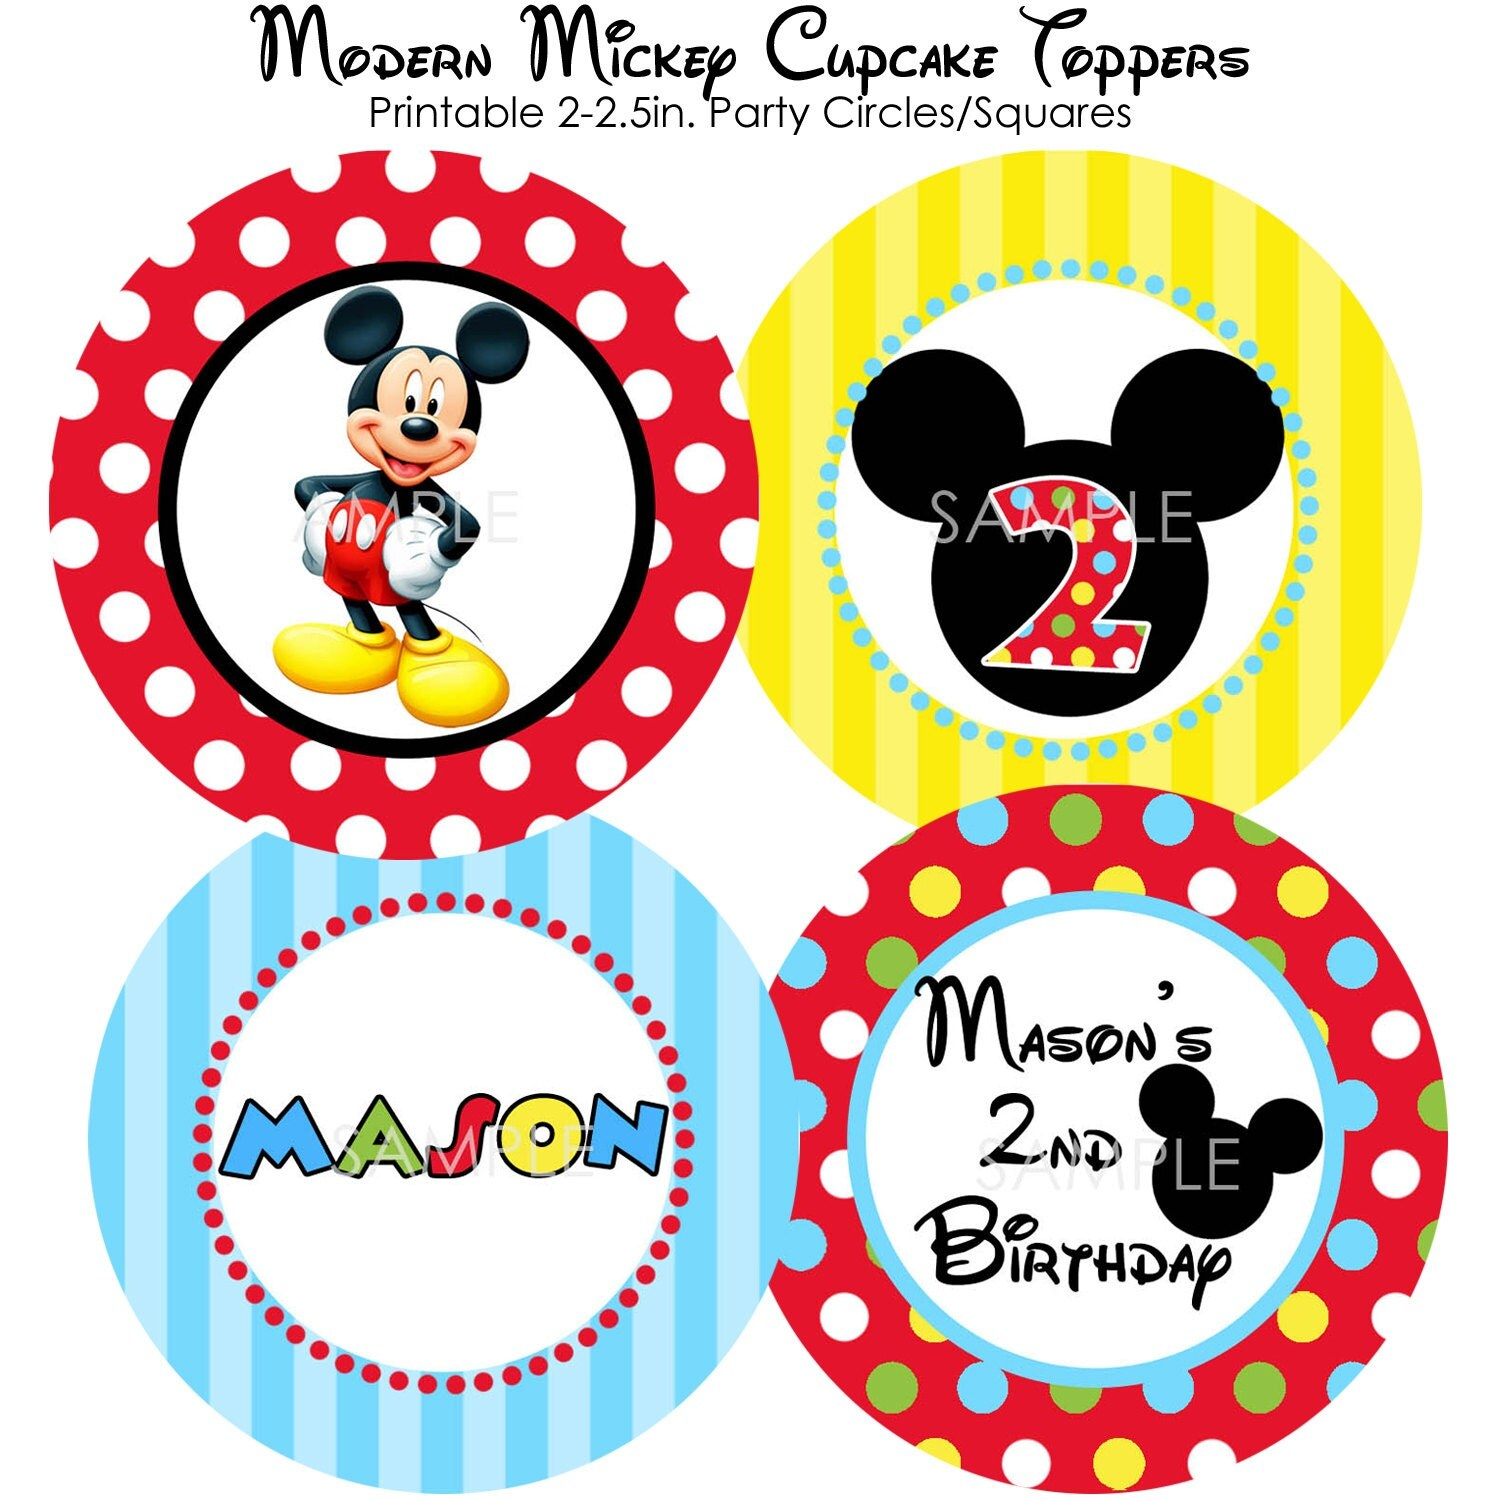 PRINTABLE Modern Mickey Mouse Cupcake Toppers by modpoddesignsMickey Mouse Cupcake Toppers